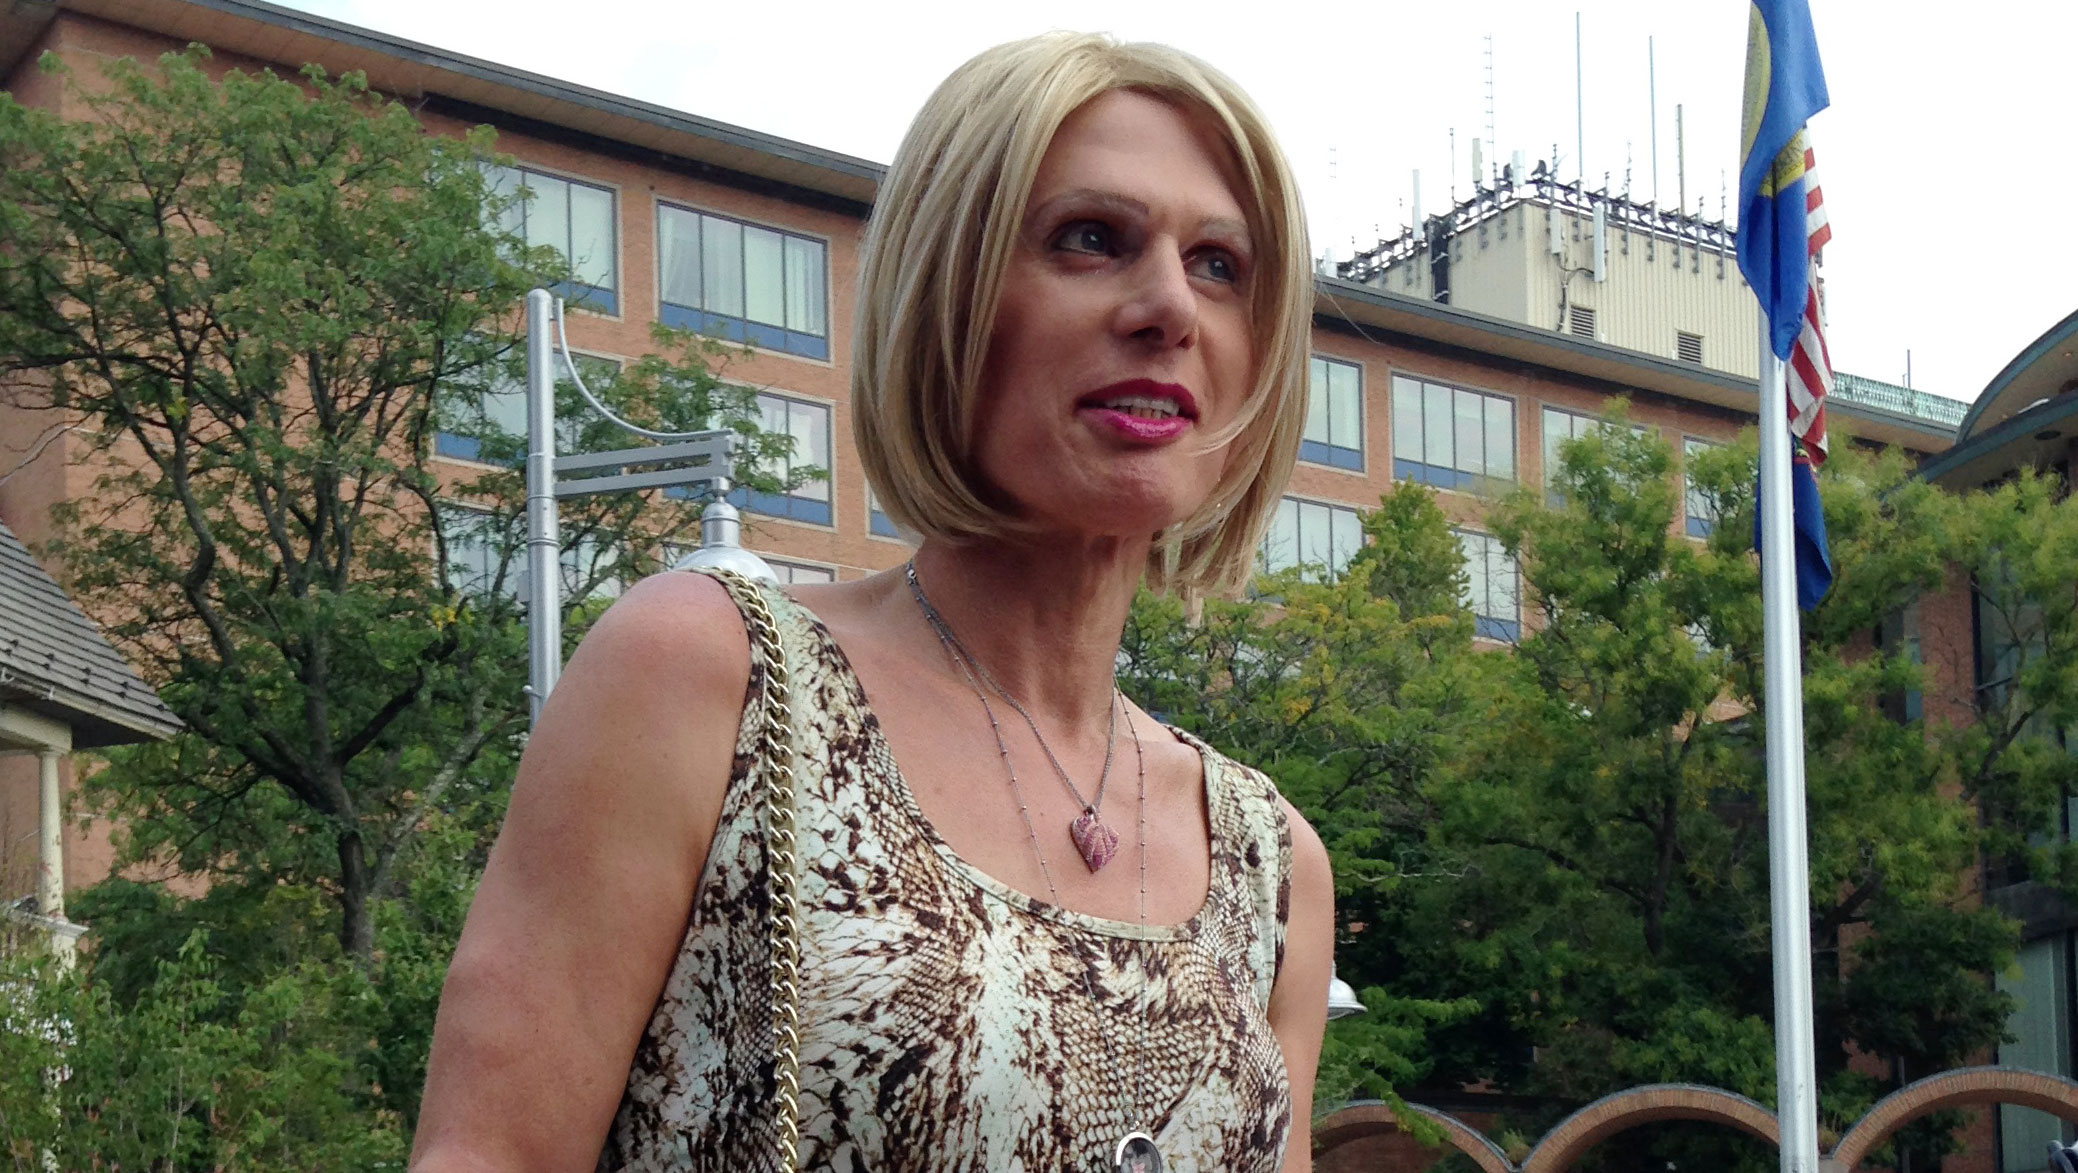 Judge Sides With Woman Seeking Gender Reassignment Surgery